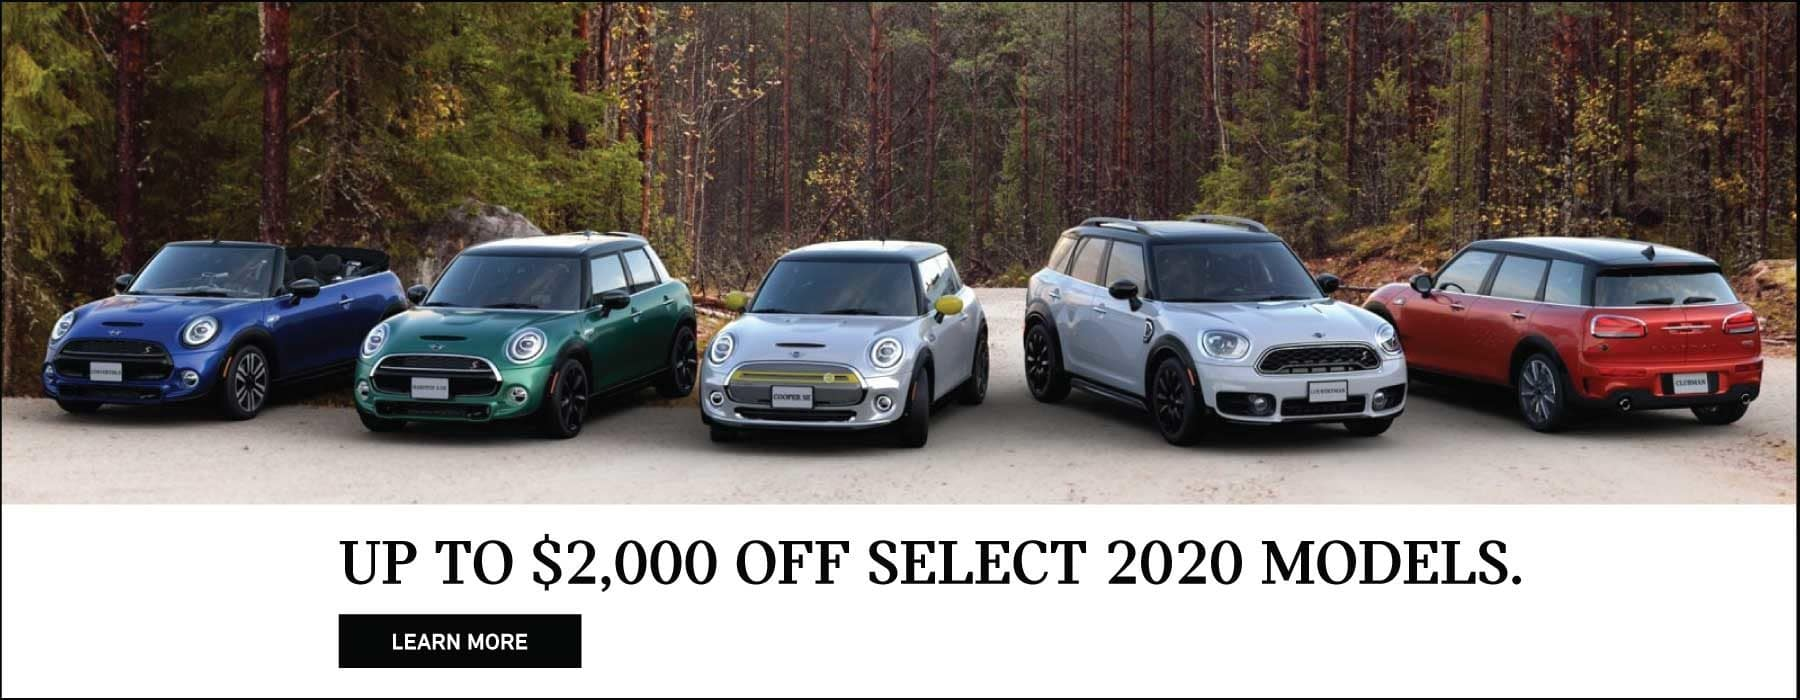 UP TO $2000 OFF SELECT 2020 MINI MODELS